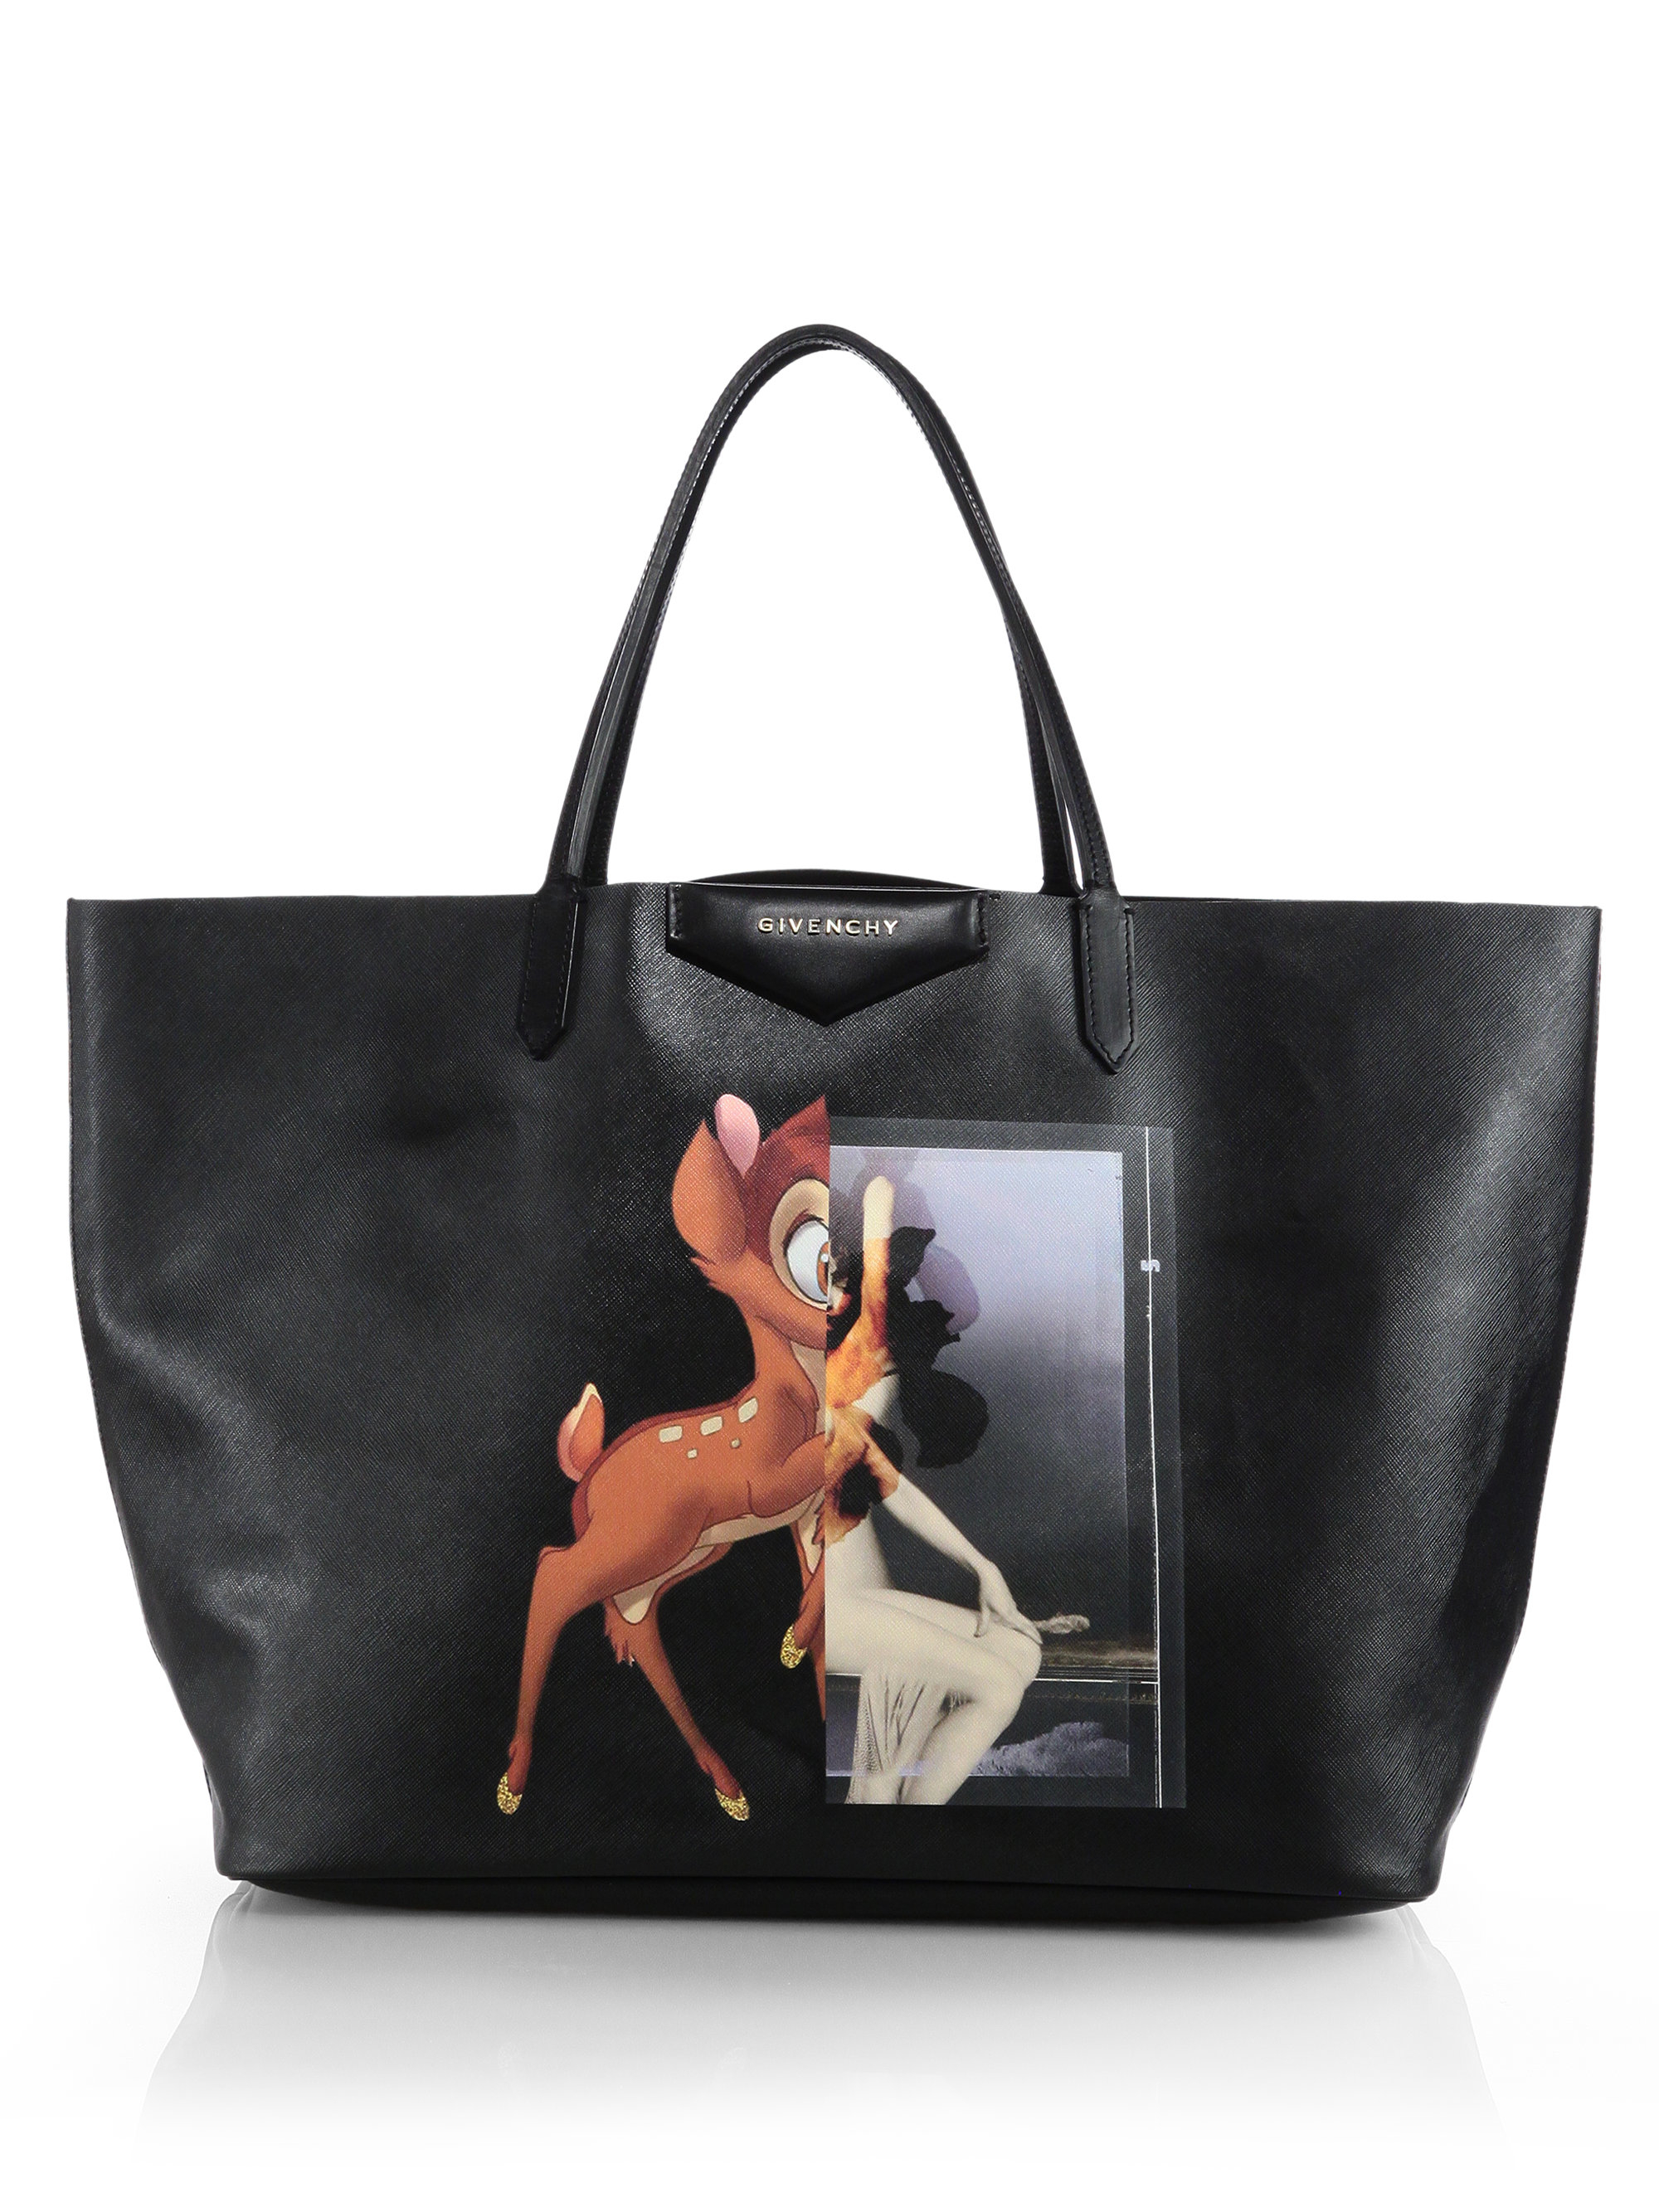 5a67fd4563 Lyst - Givenchy Bambi Medium Leather Shopper Tote in Black